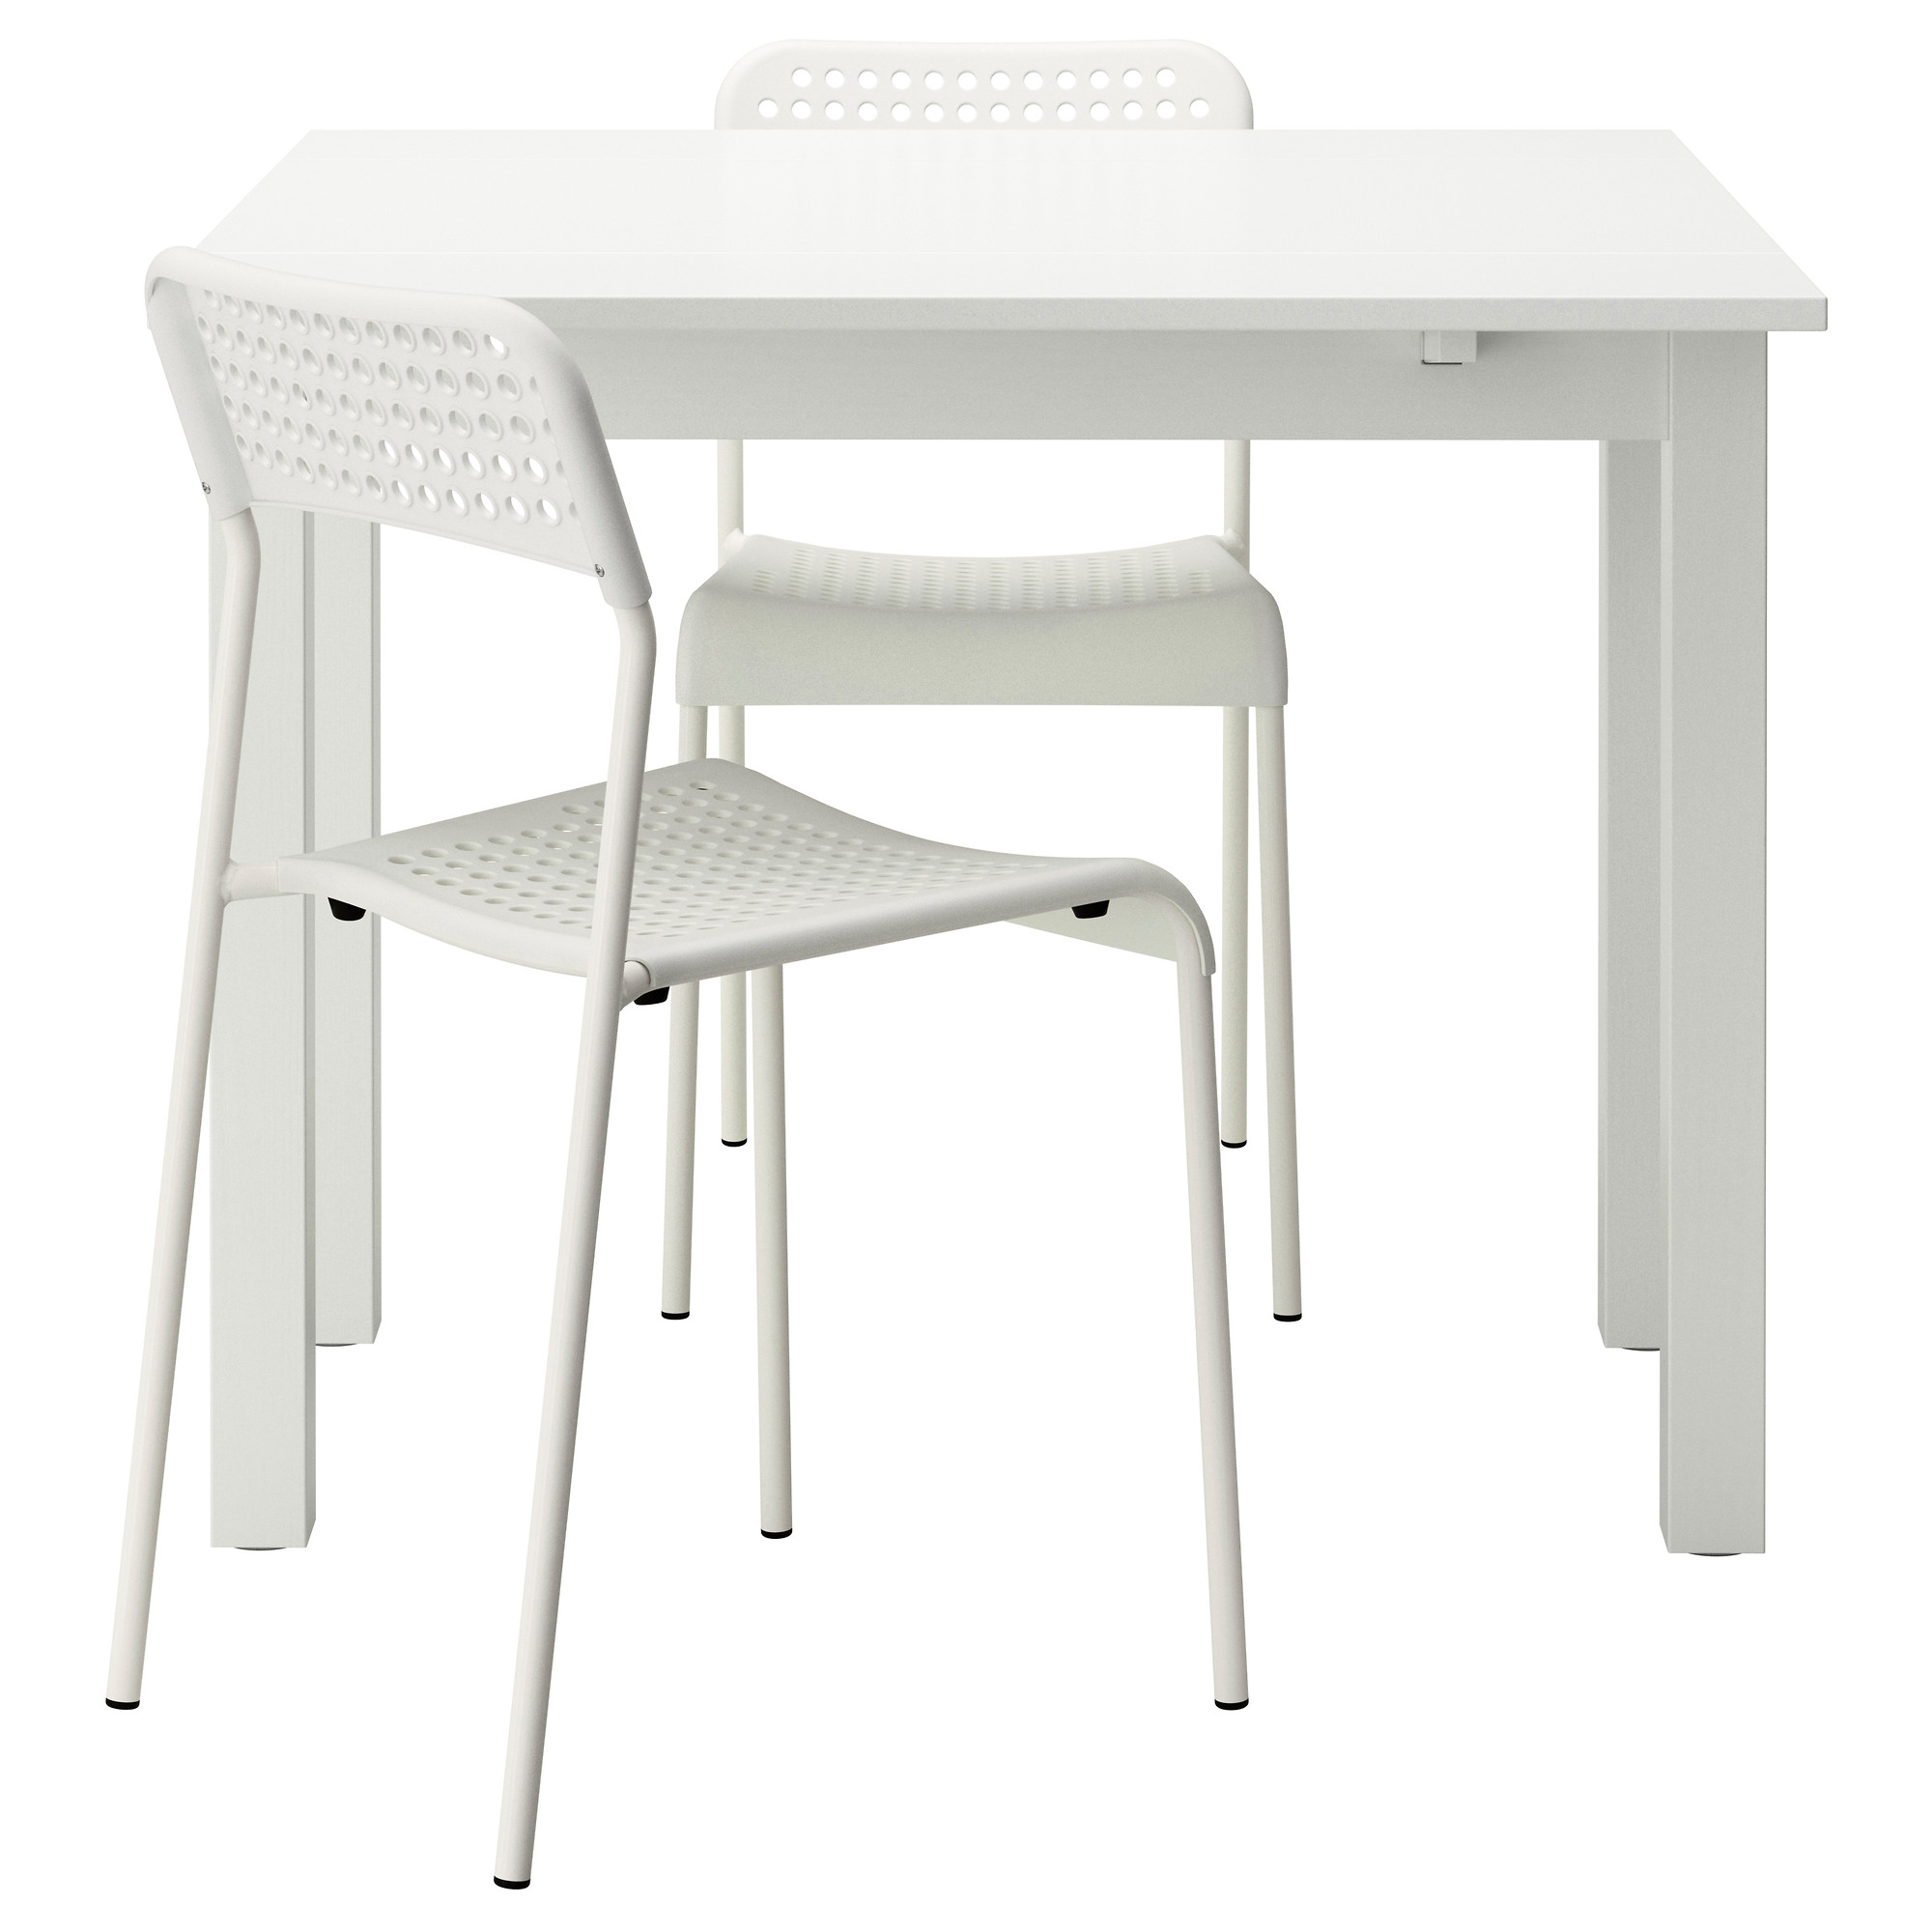 Table et chaise de cuisine ikea table chaise cuisine for Table cuisine